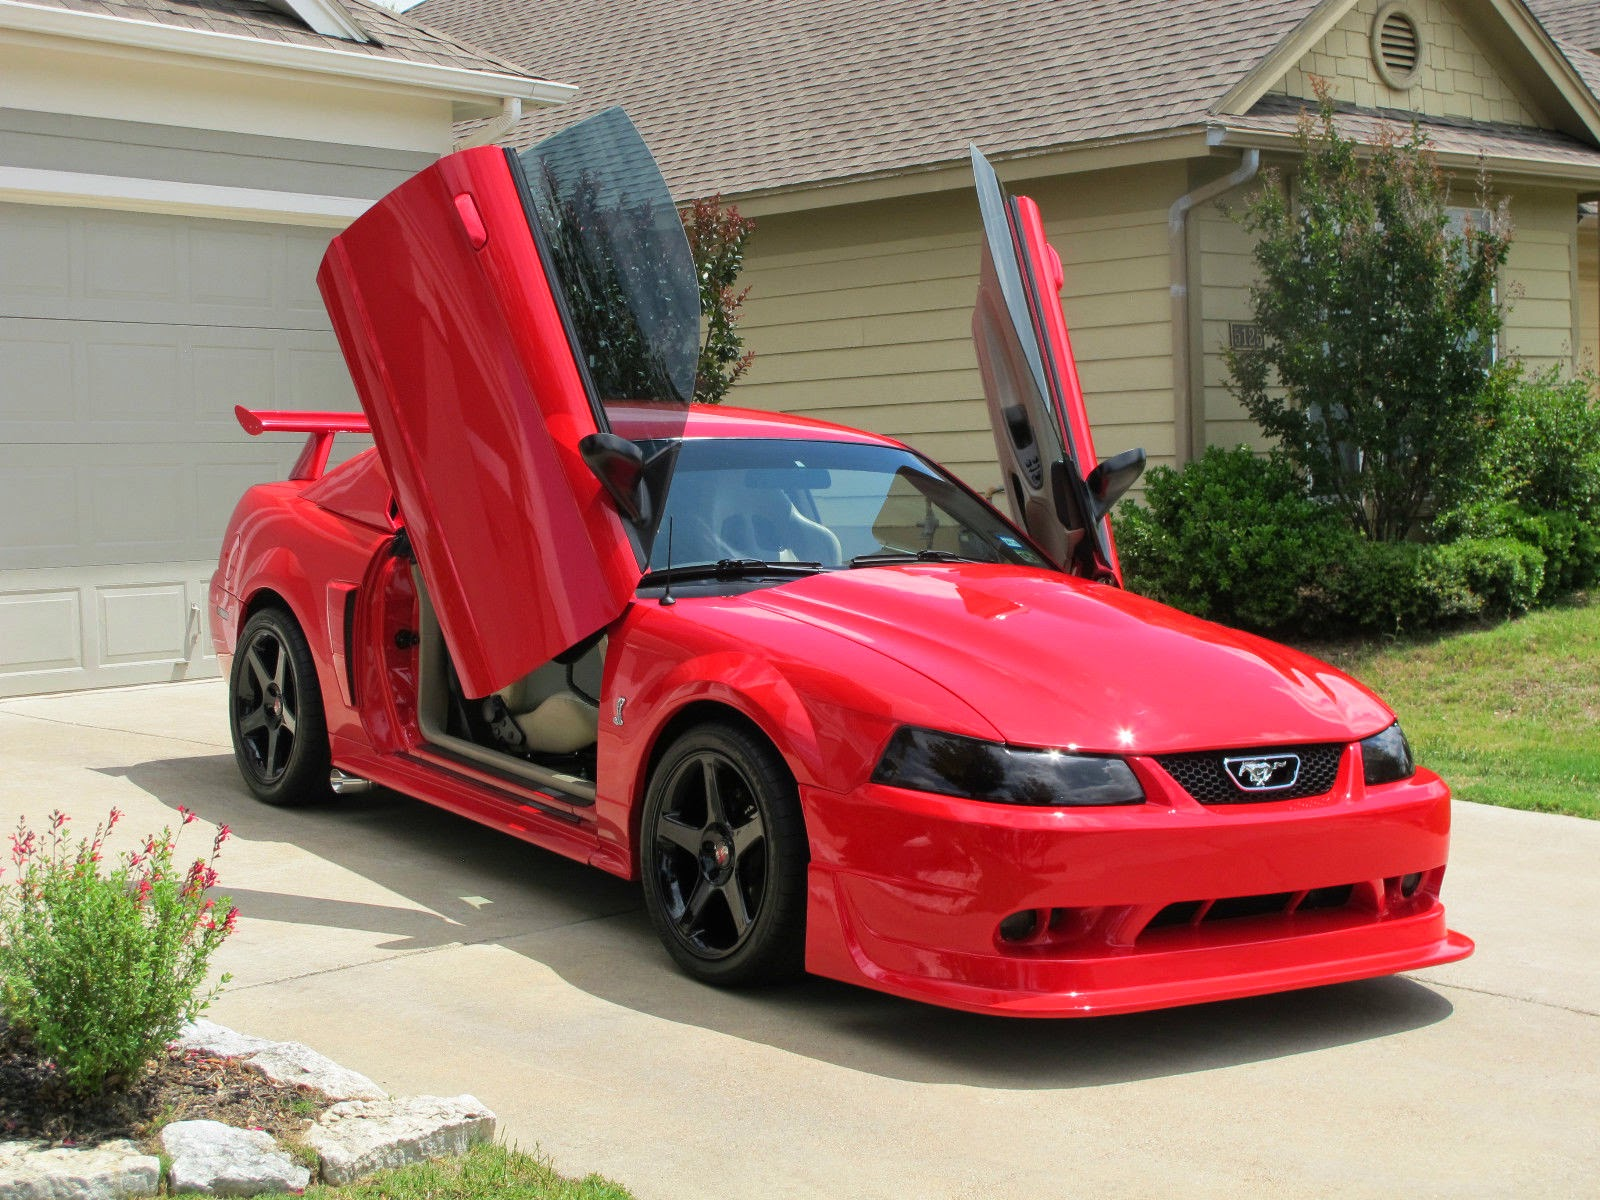 2004 Ford Mustang Gt Custom Super Charger For Sale American Muscle 1980 Interior Cars